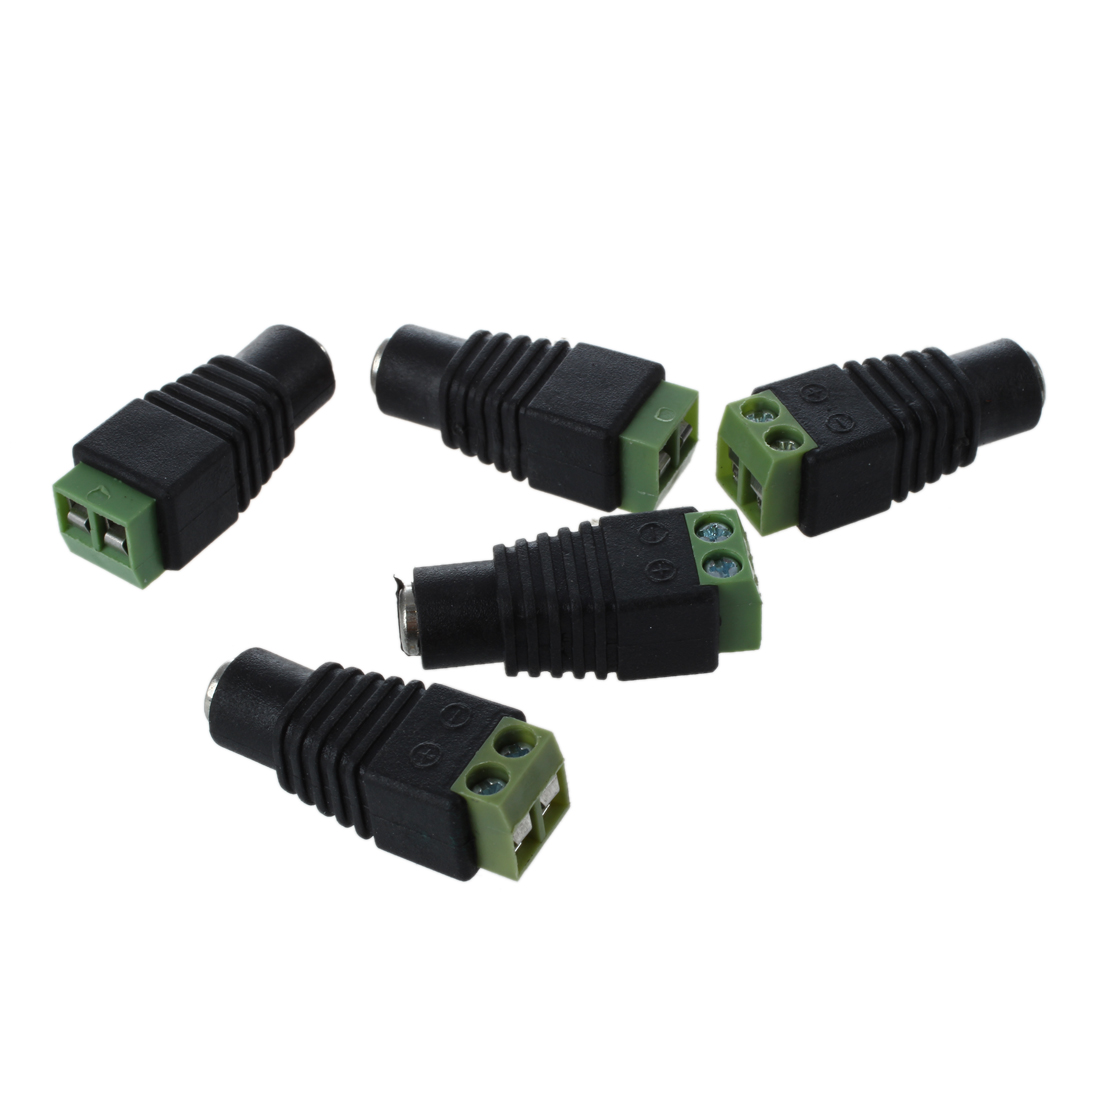 5X DC Power Female Jack 5.5X 2.1mm Connector Cable Adapter Plug CCTV DVR Camera